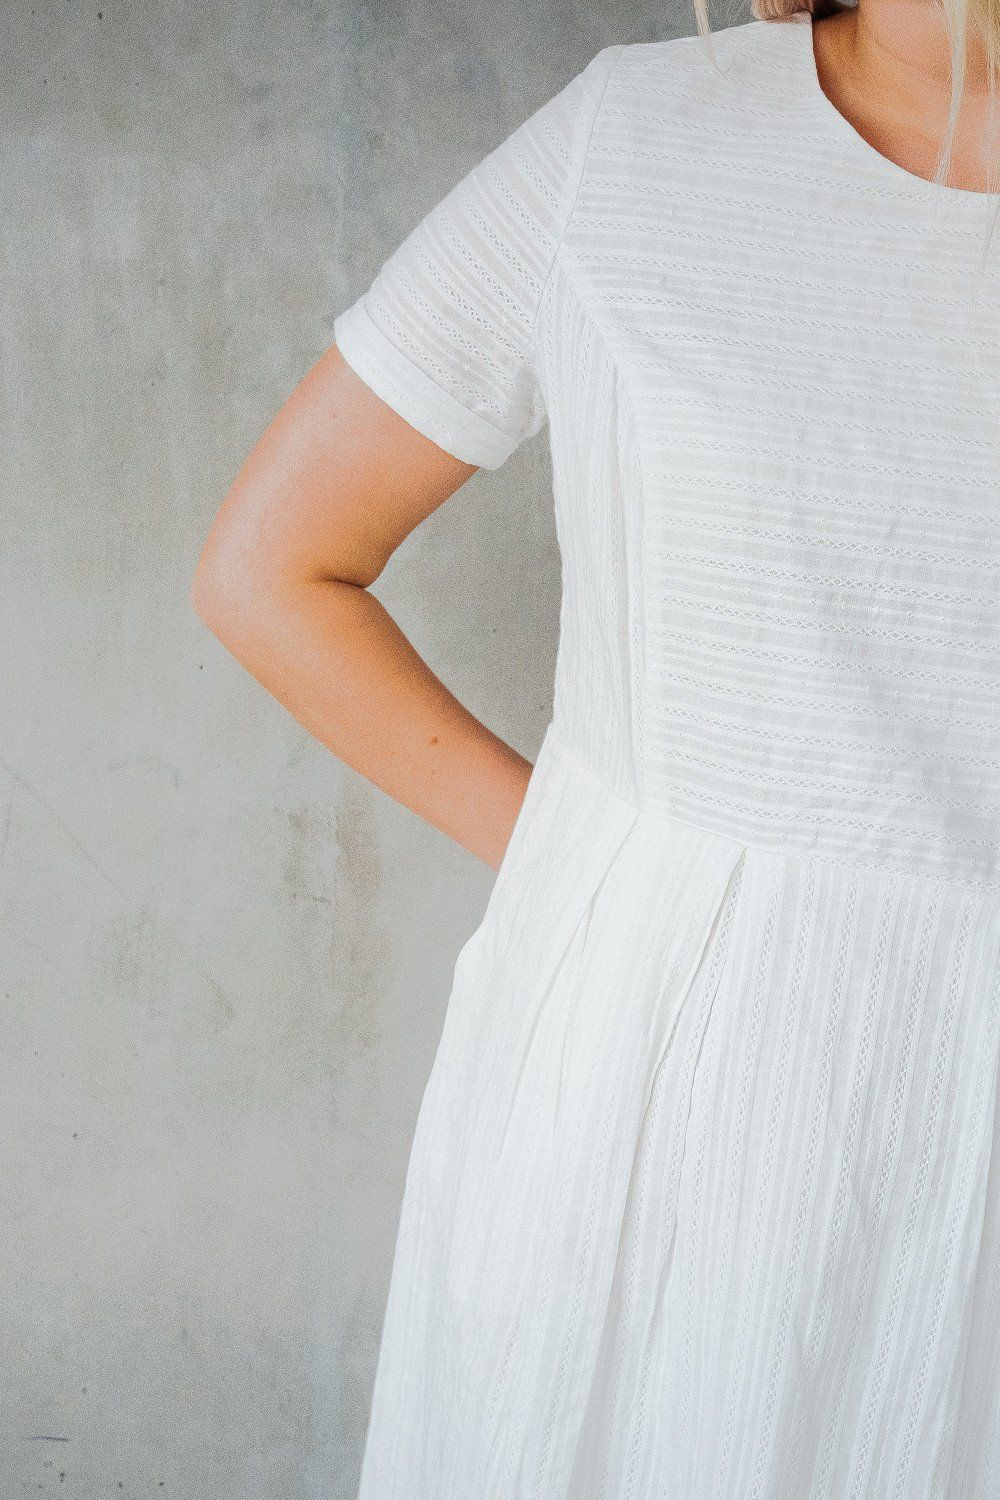 Delicate white dress beherenowclothing chanroberson